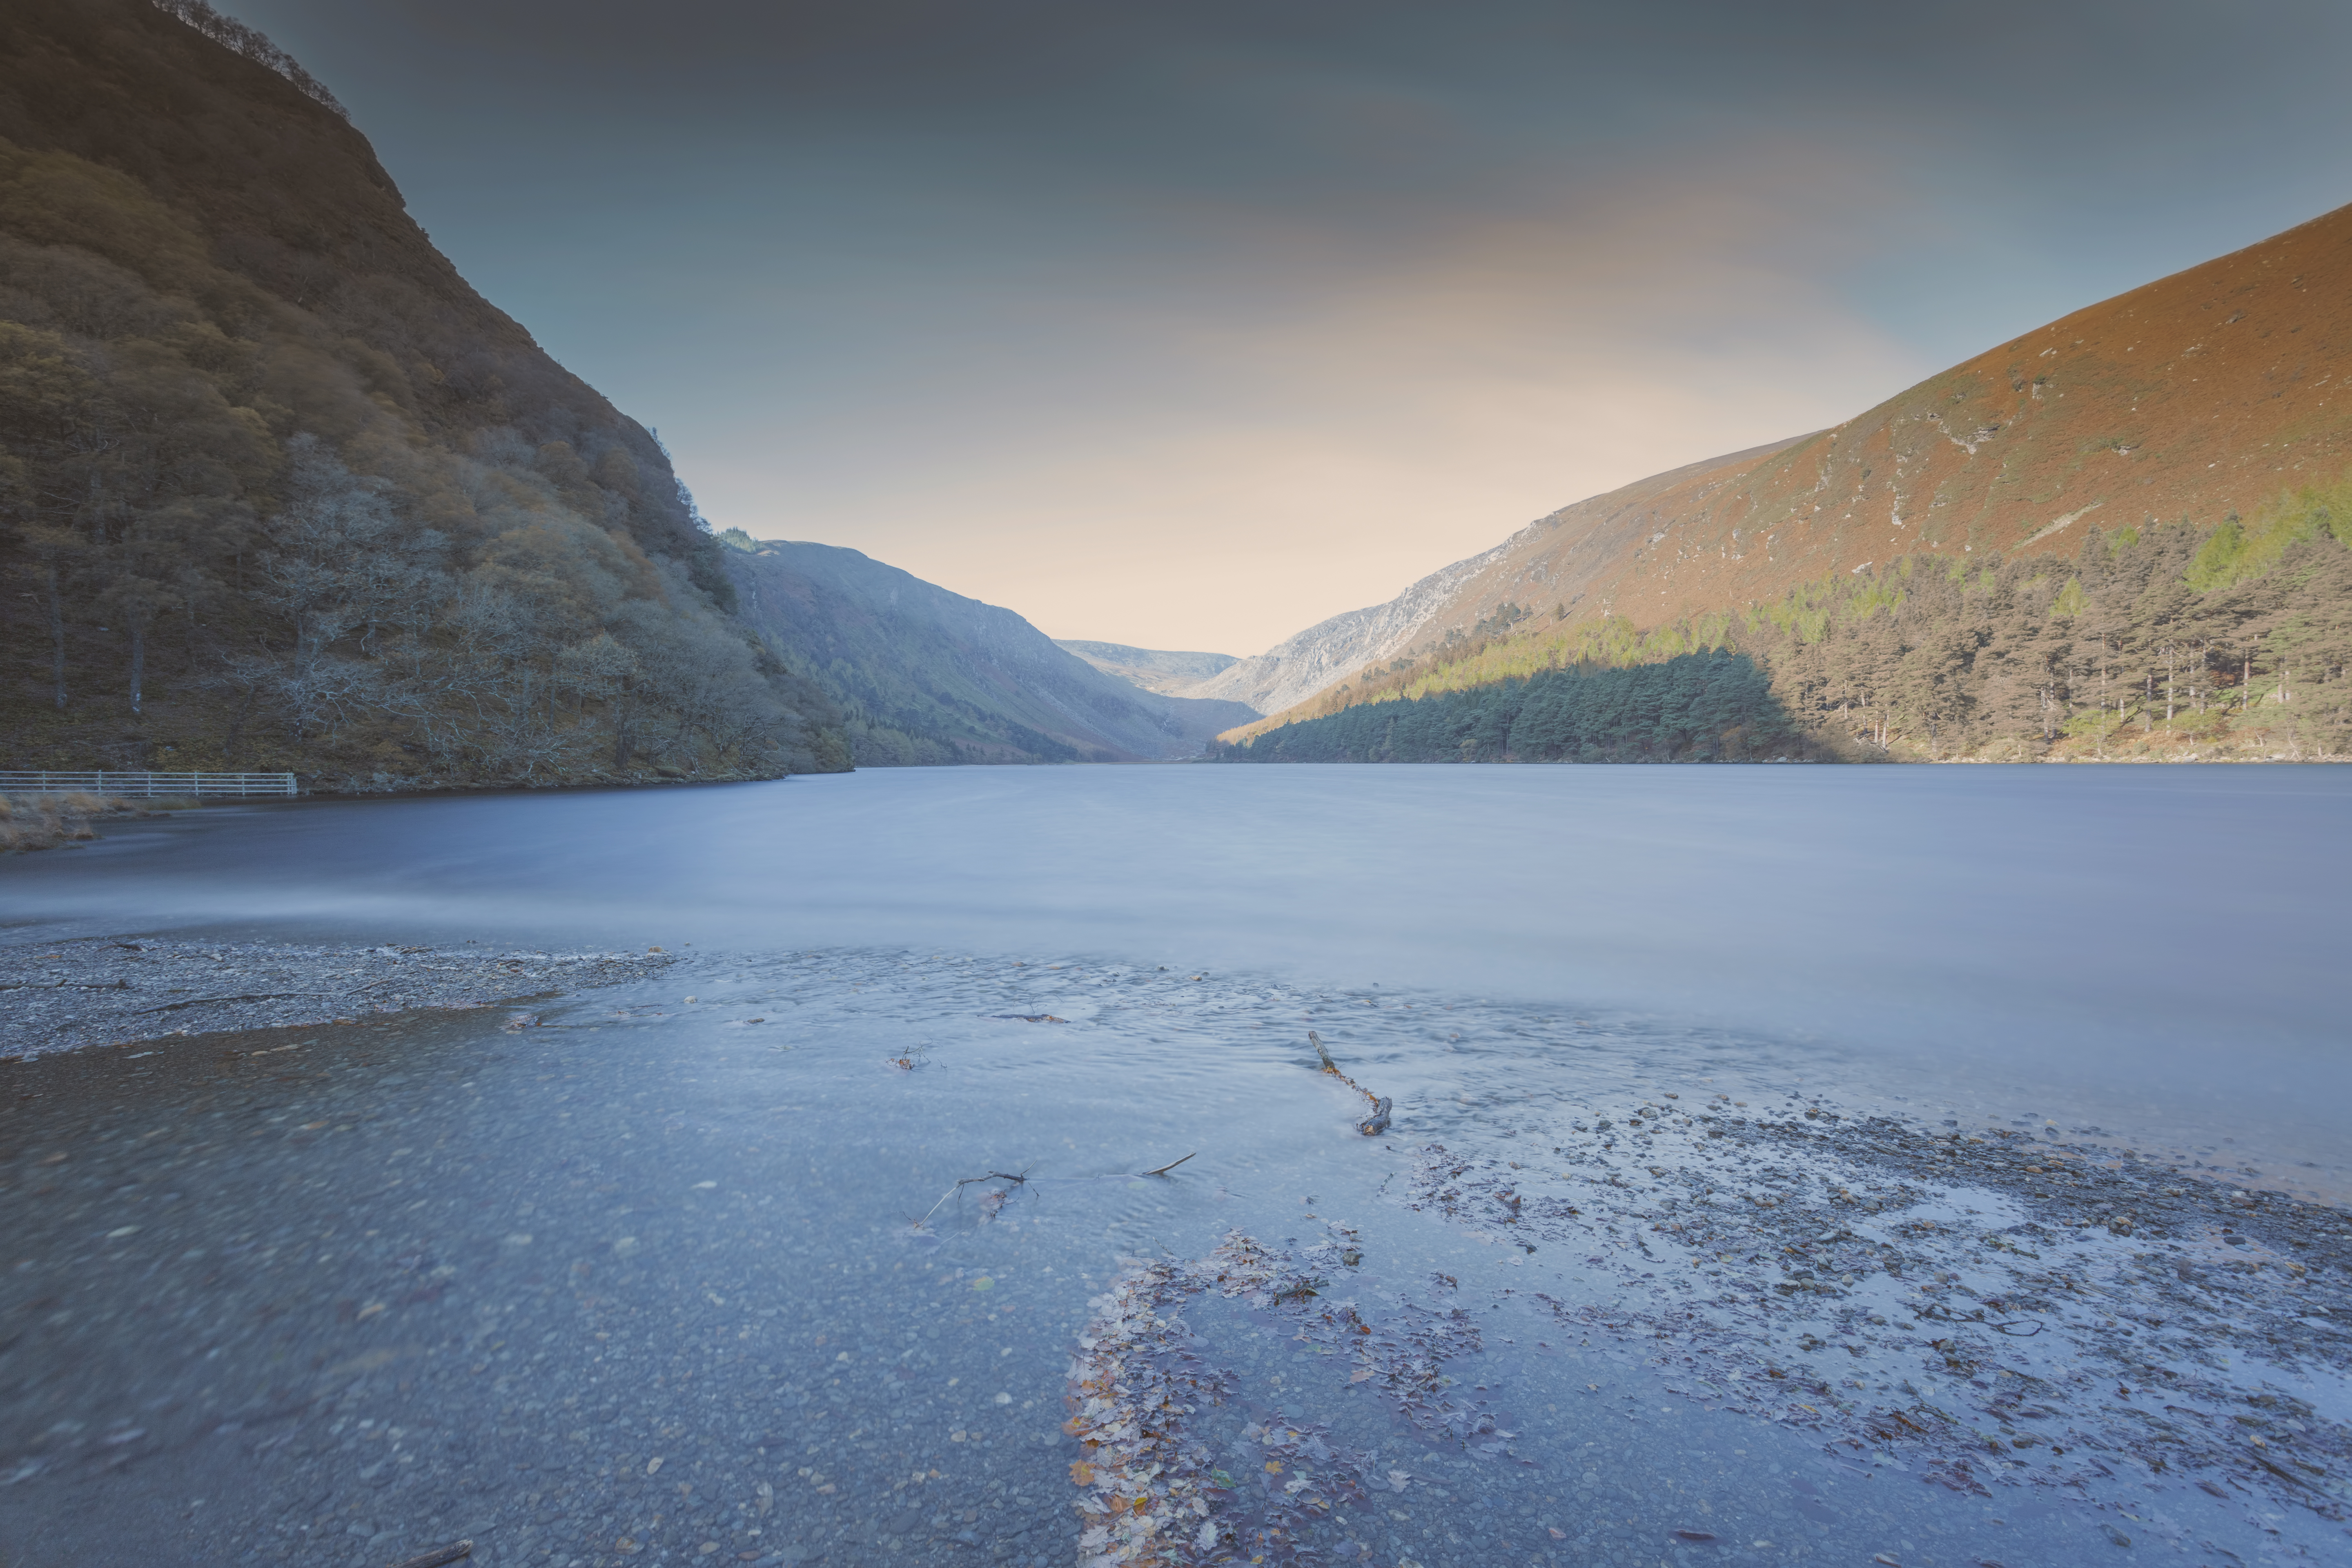 Upper Lake Glendalough